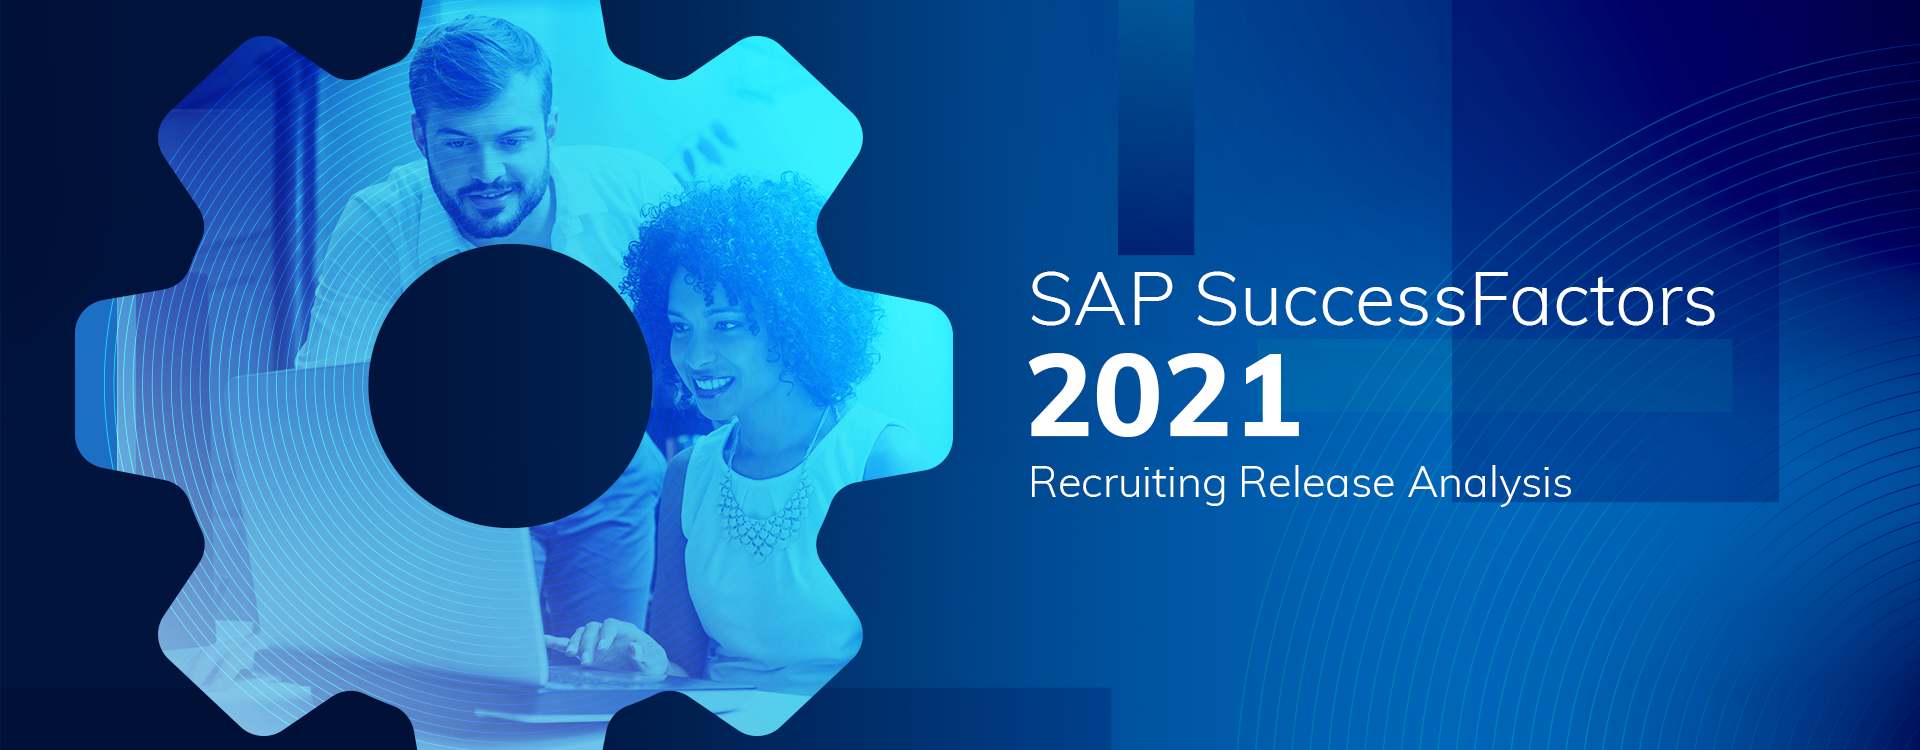 SAP SuccessFactors H1 2021 Recruiting Release Analysis featured image